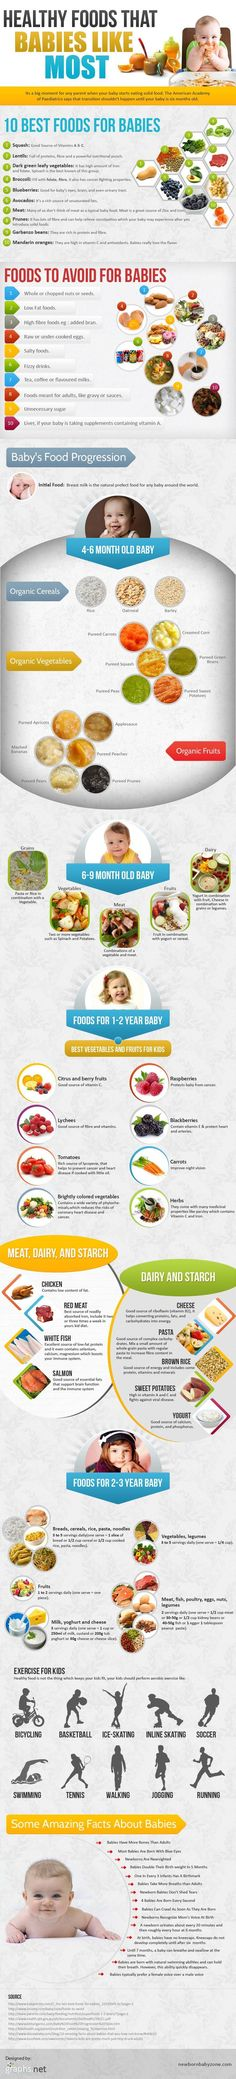 What Babies Can Eat